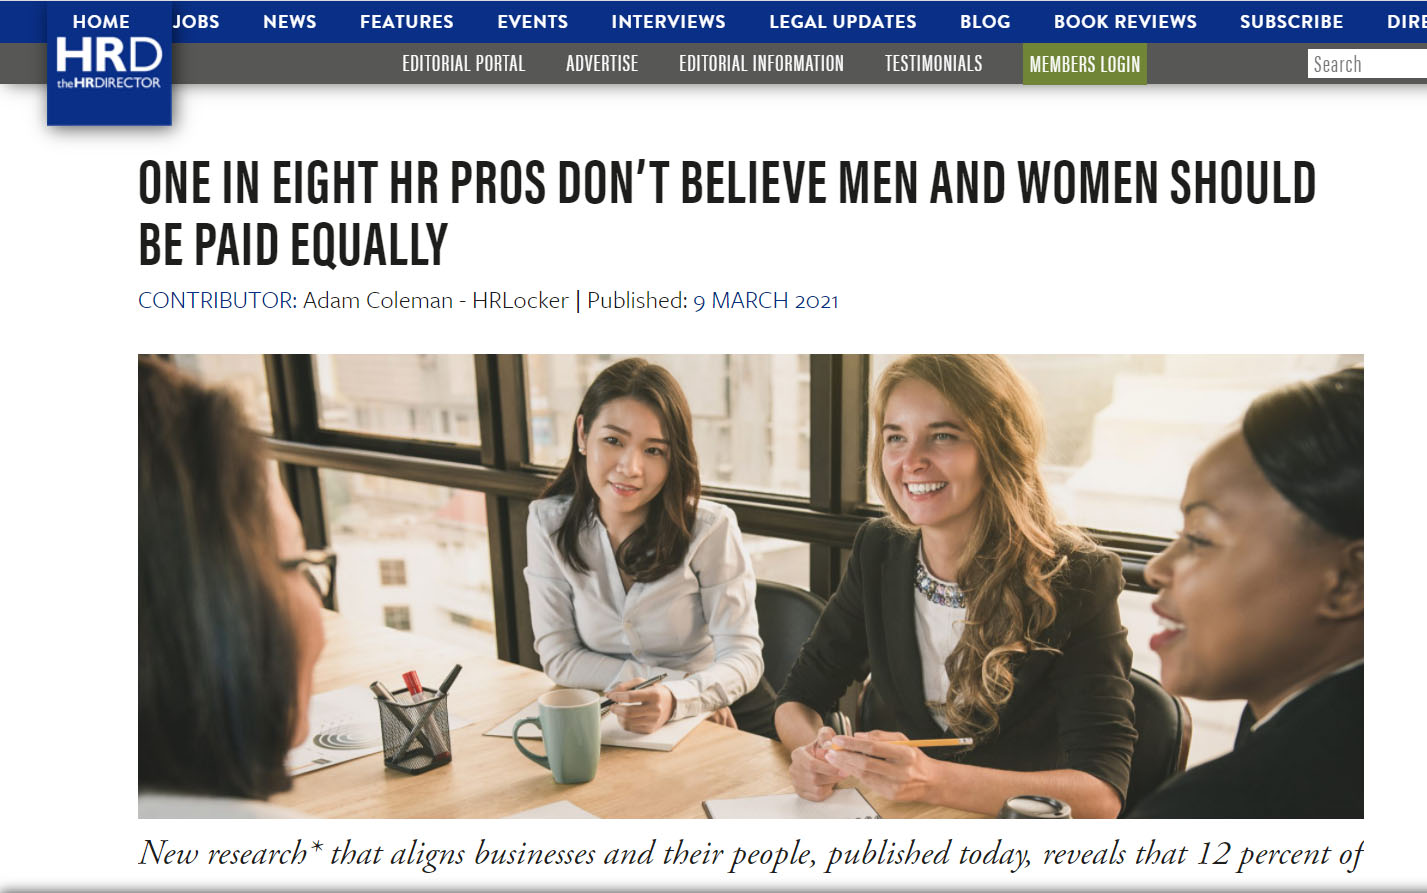 1 in 8 HR Professionals don't believe that men & women should be paid equally